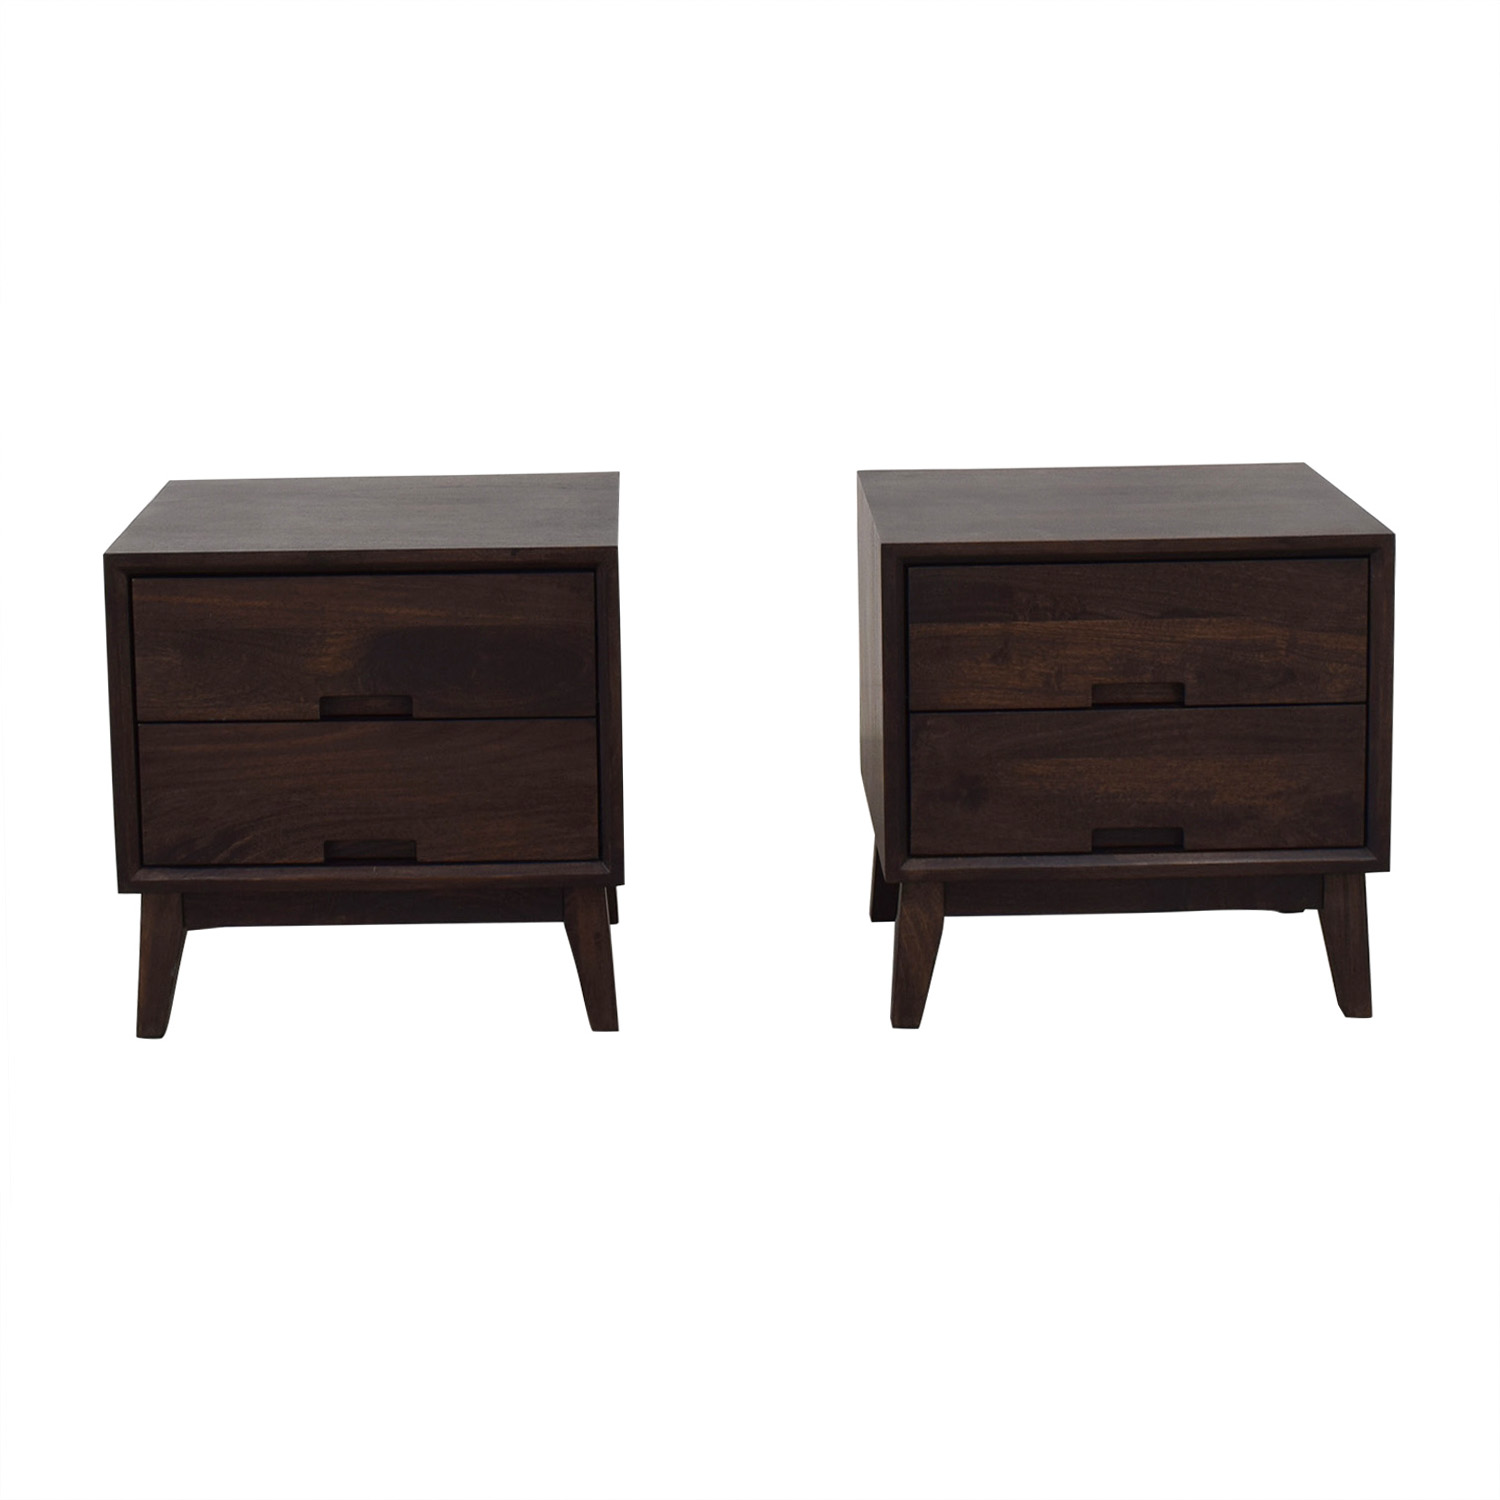 Crate & Barrel Steppe Nightstands / End Tables